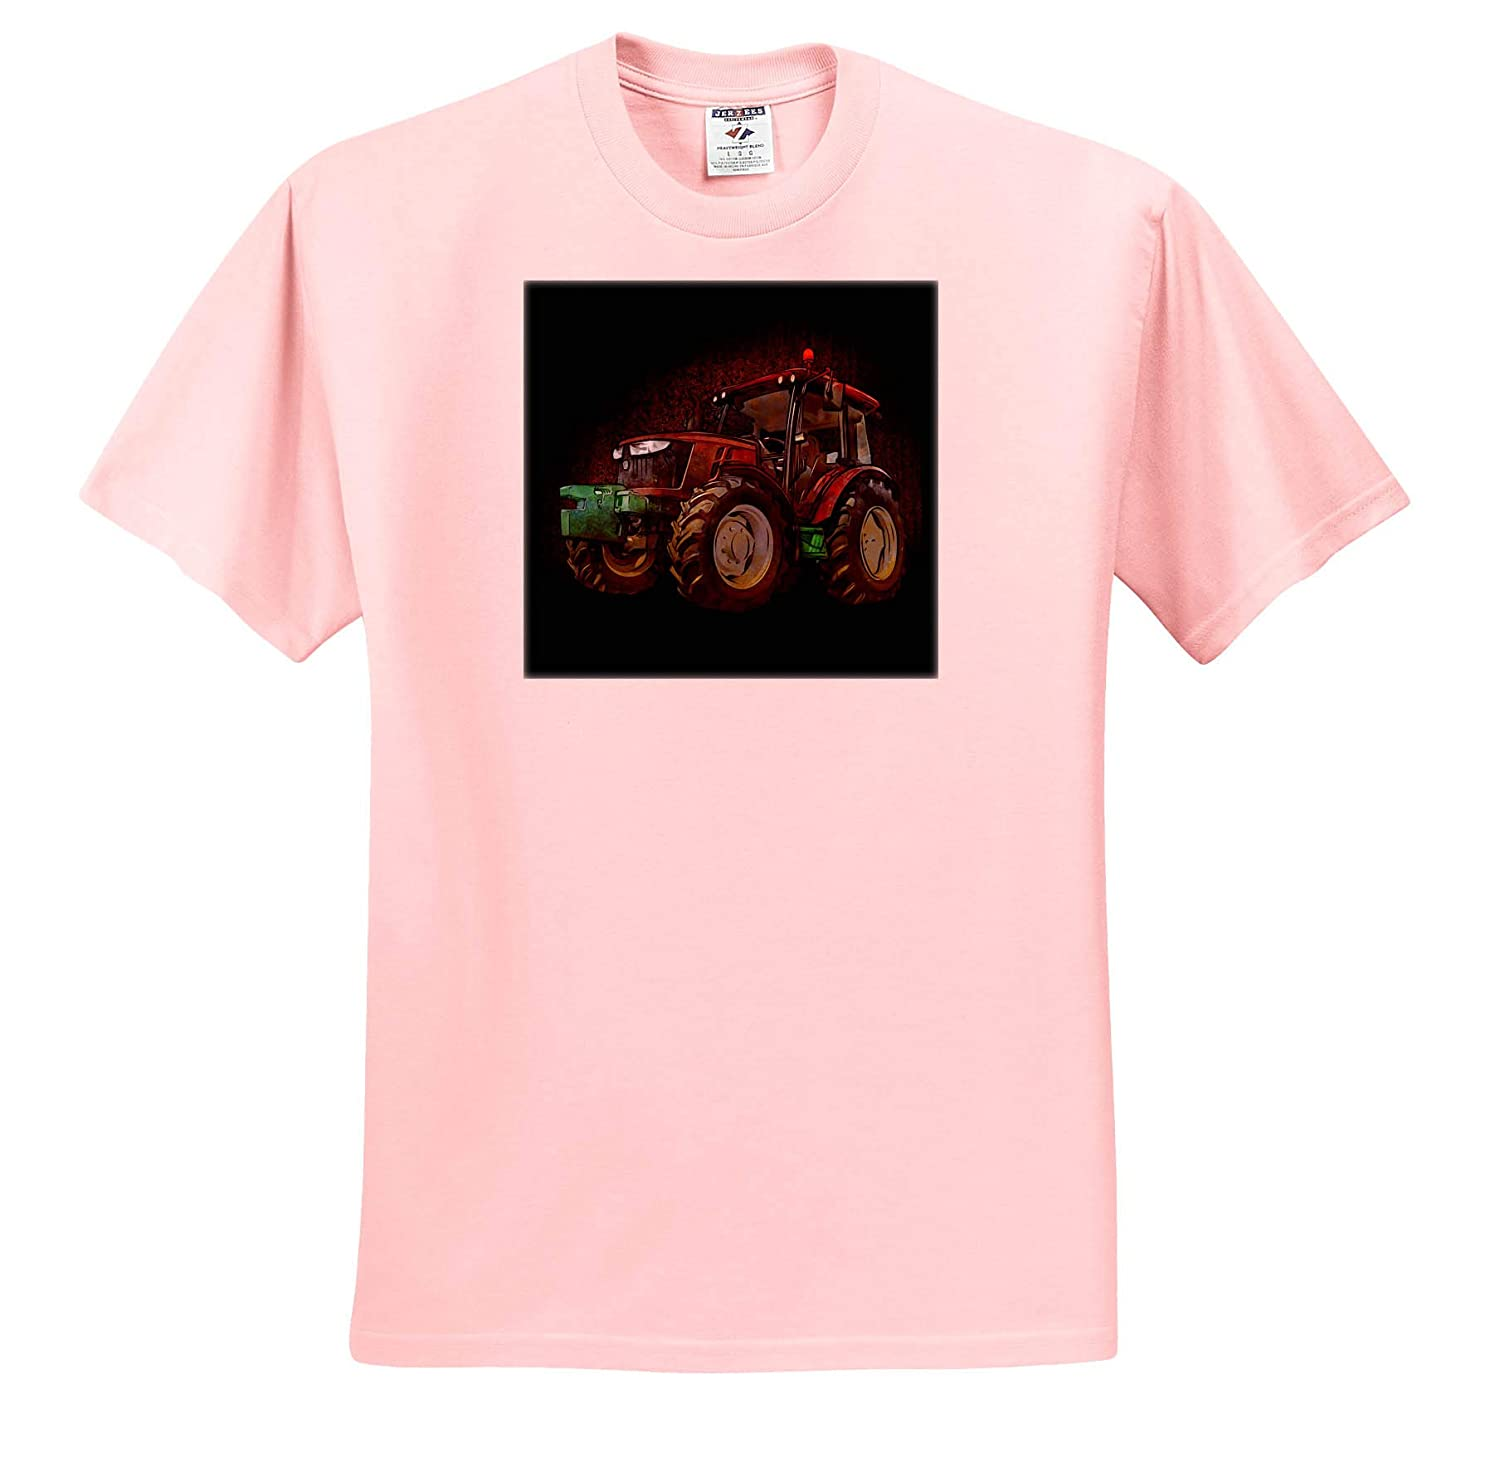 3dRose Sven Herkenrath Farmer Funny Illustration of a Tracktor for Farmer and Agriculture ts/_320753 Adult T-Shirt XL